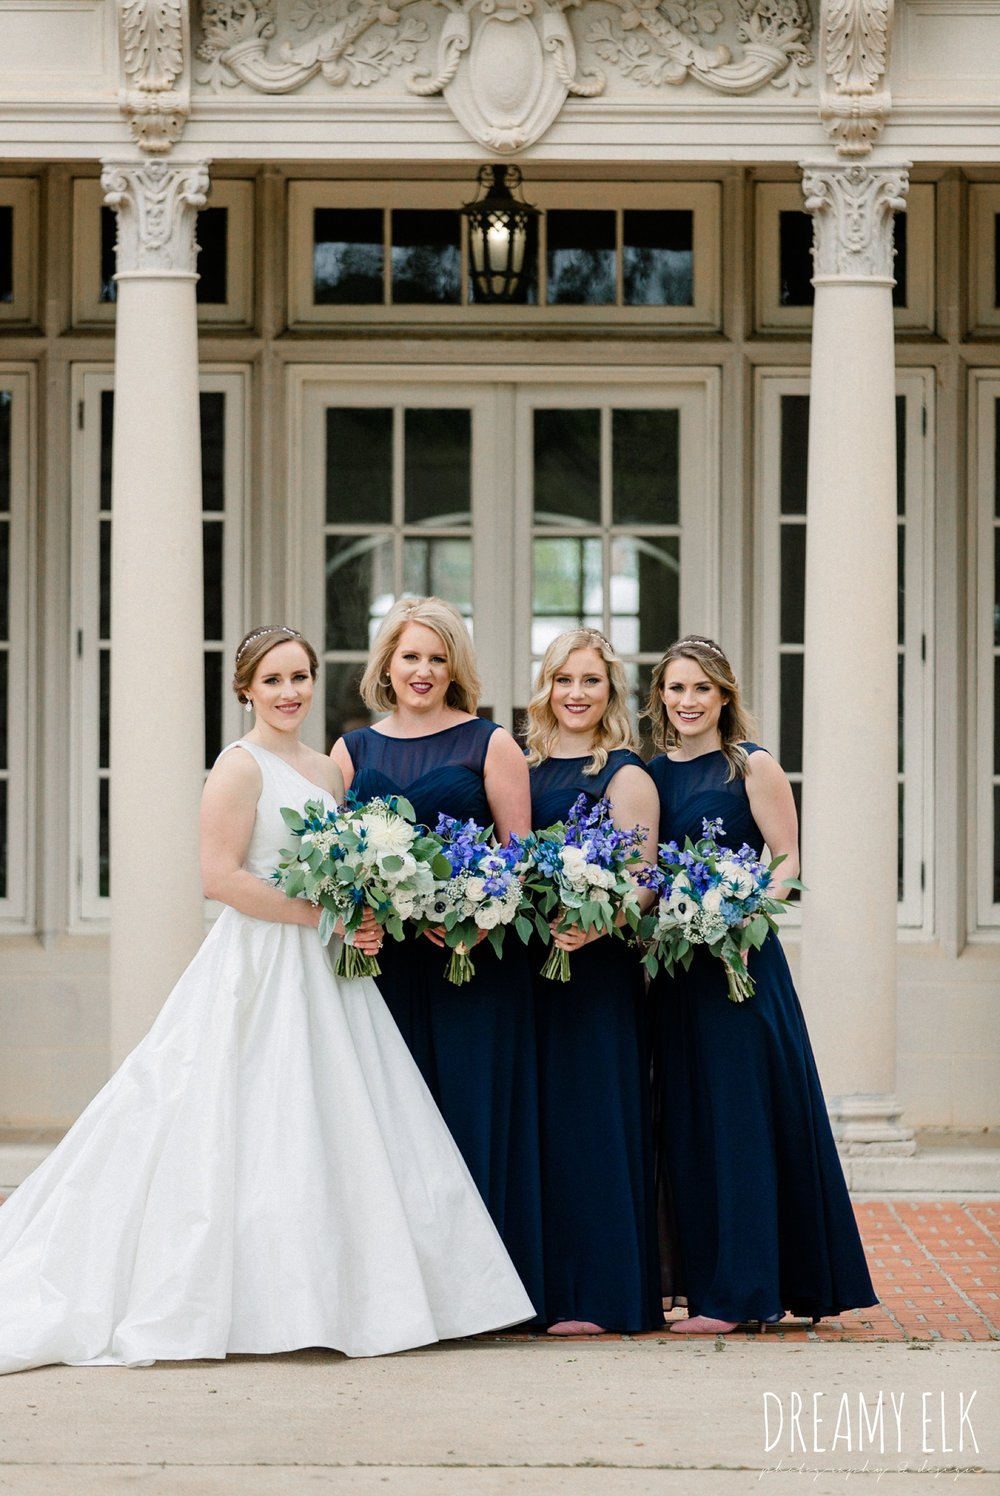 blue wedding bouquet, long navy bridesmaid dress, modern wedding dress ballgown, spring wedding, the astin mansion, bryan, texas, spring wedding, dreamy elk photography and design